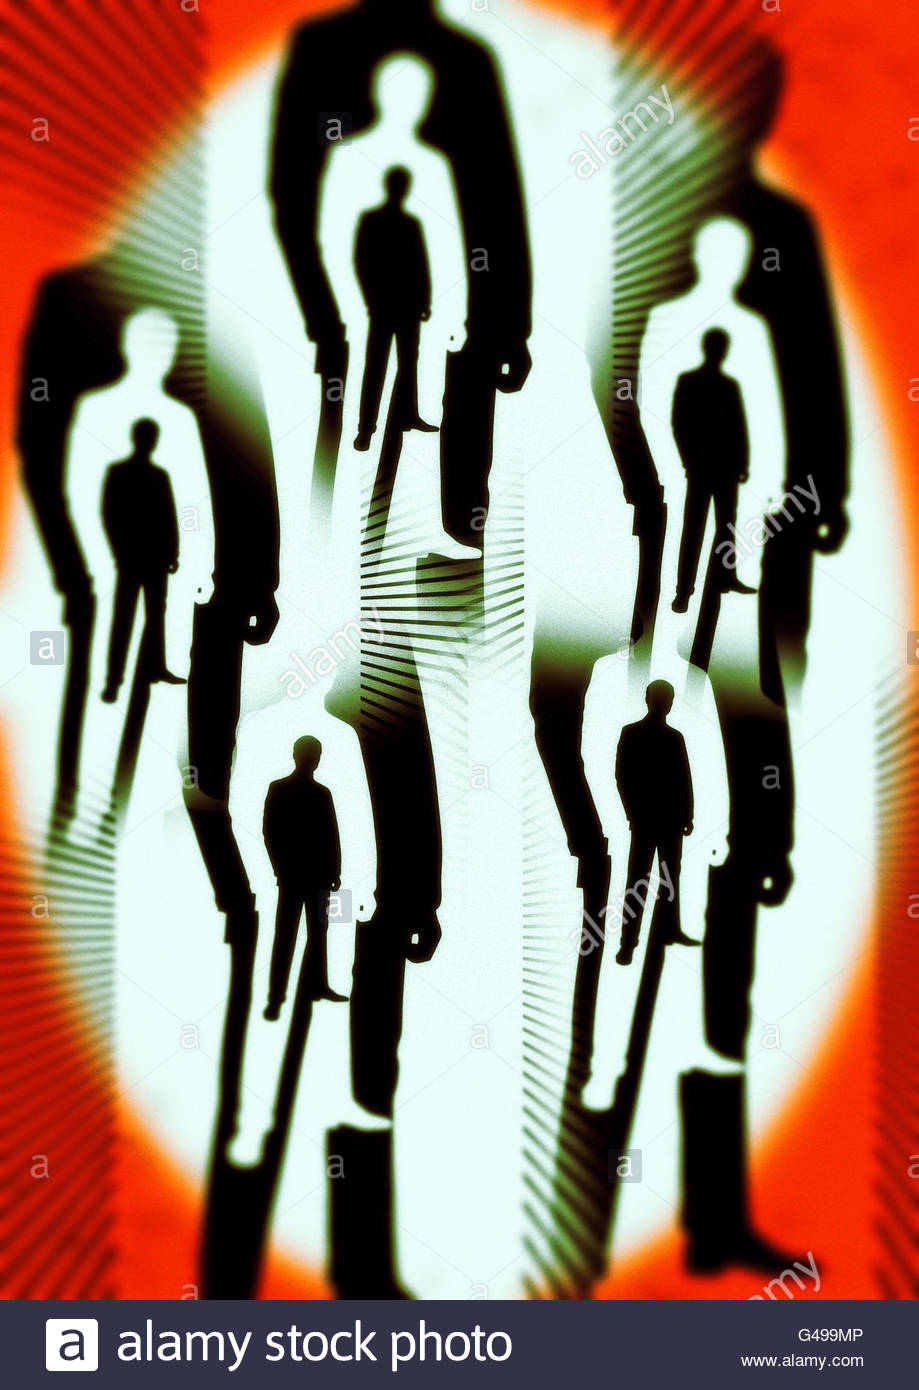 Men in Black area 51 conspiracy roswell illustration Stock Photo